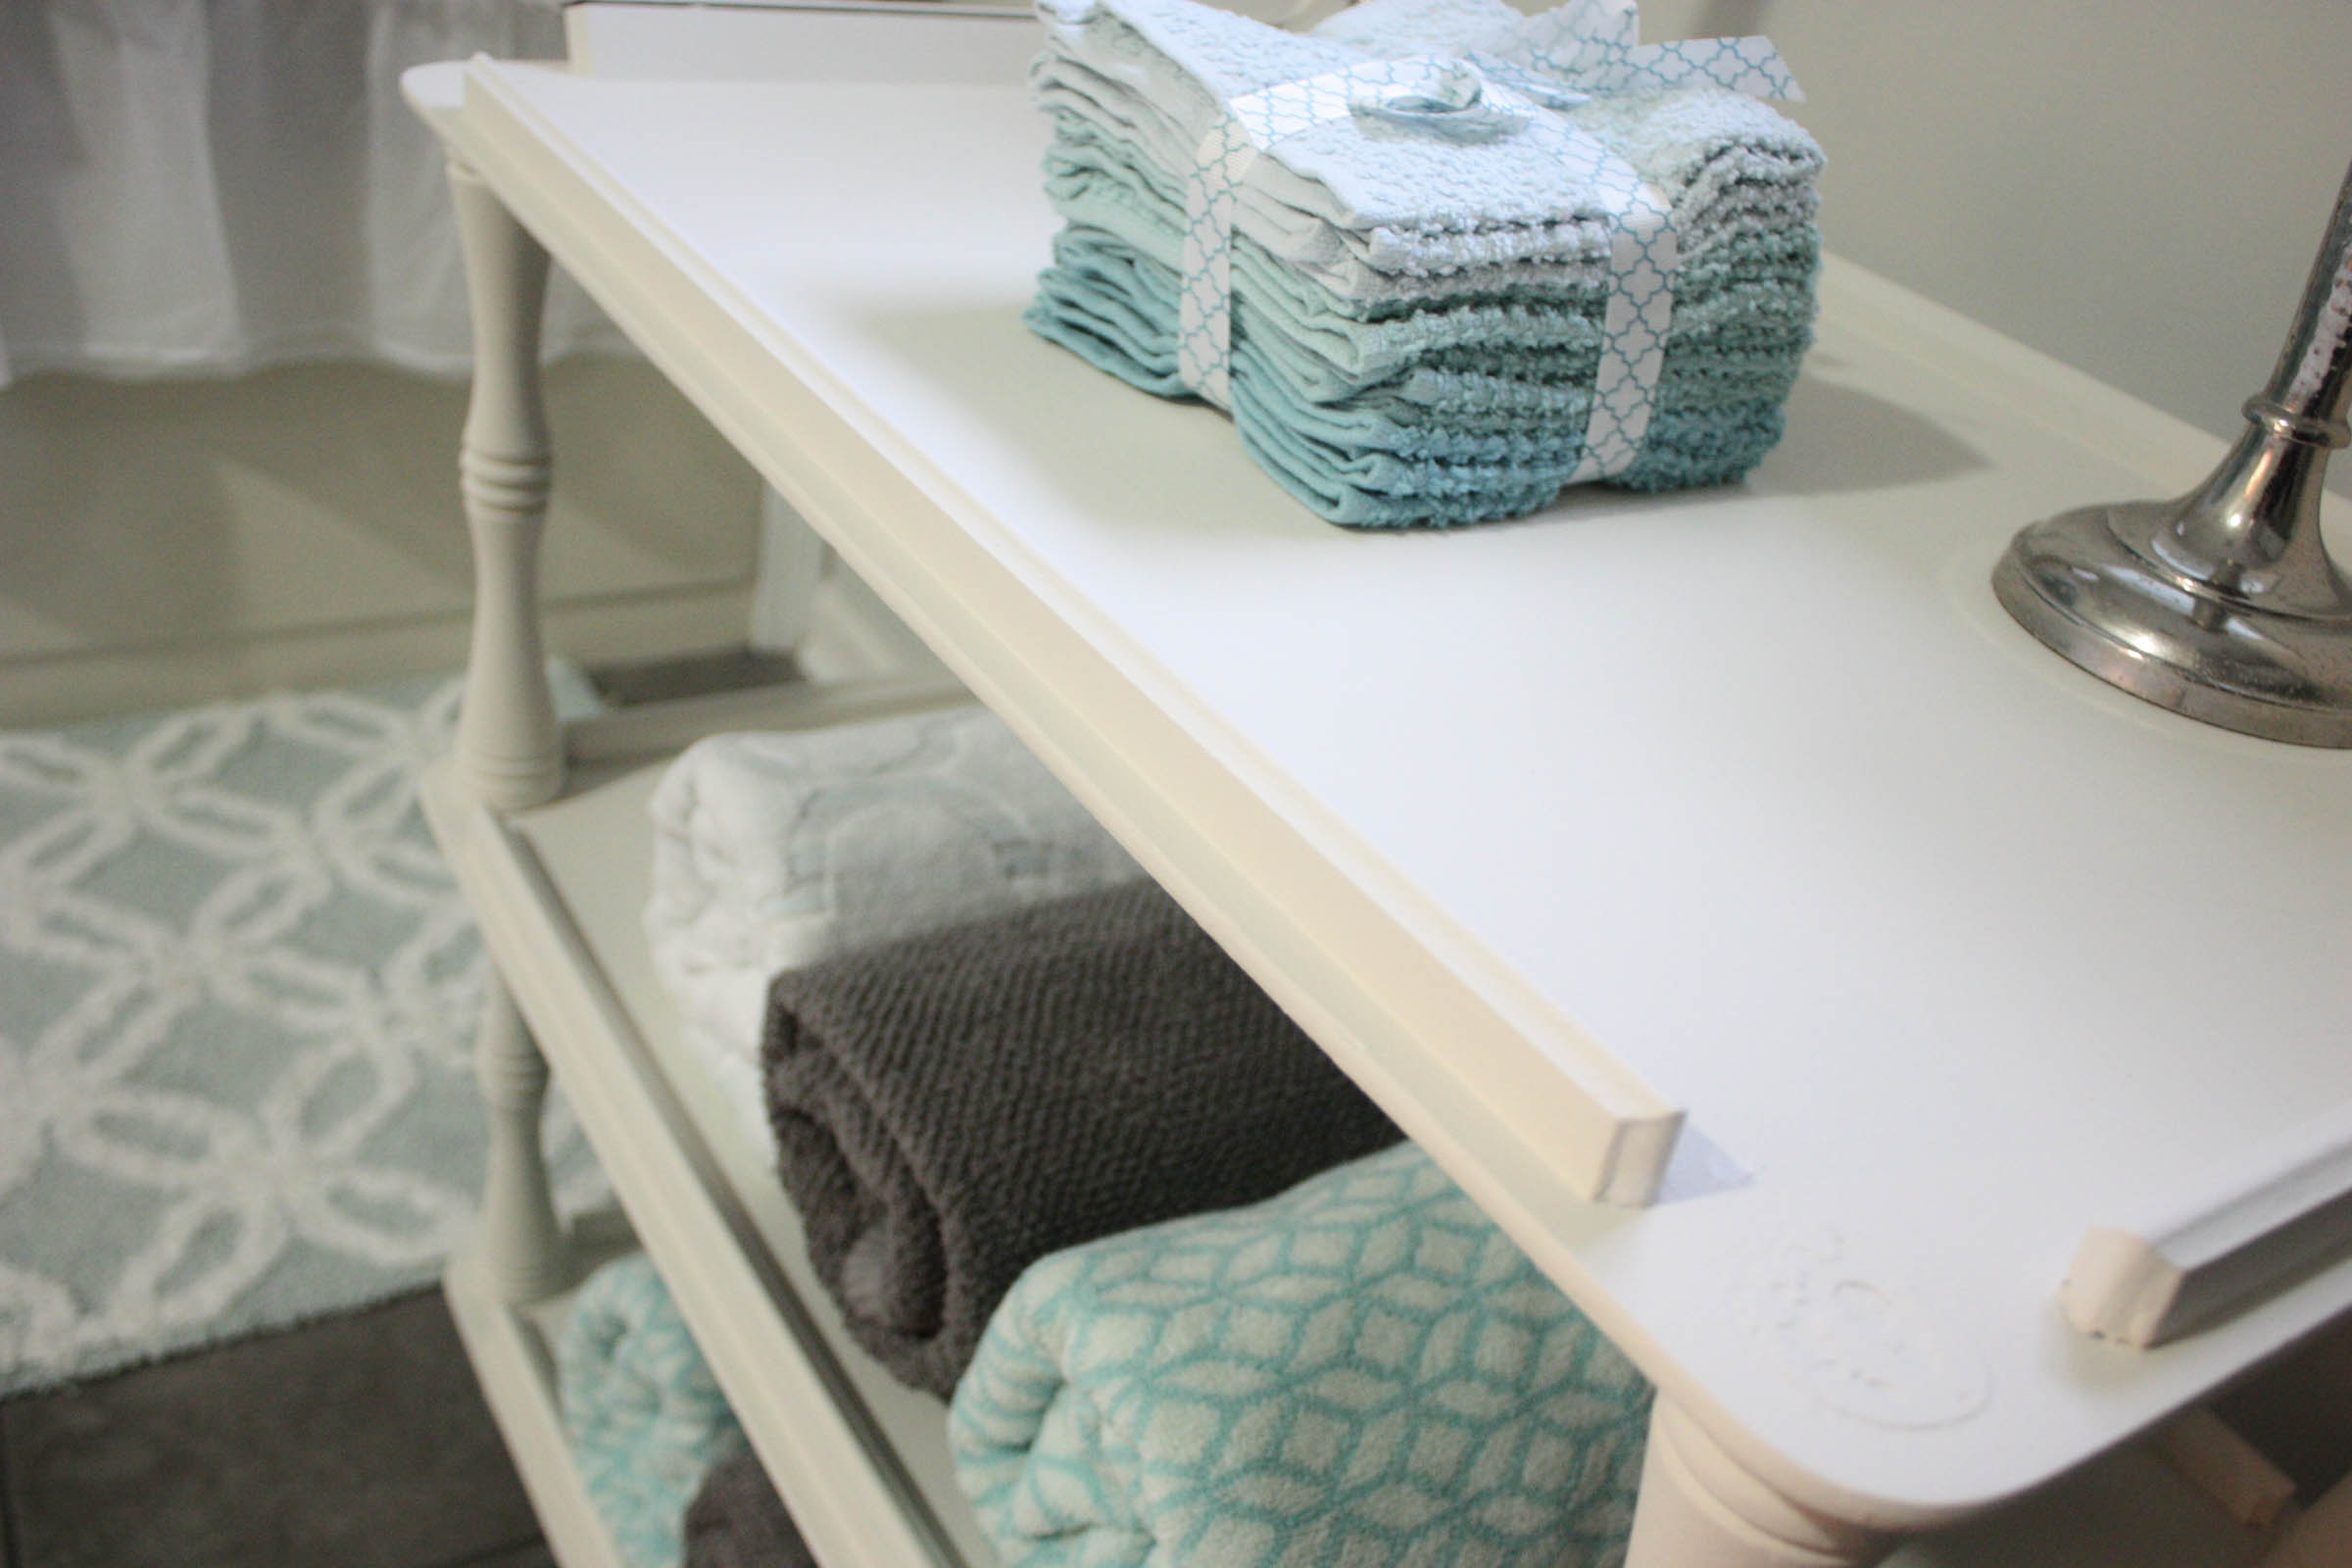 chalk painted vintage tea cart holding towels and rags